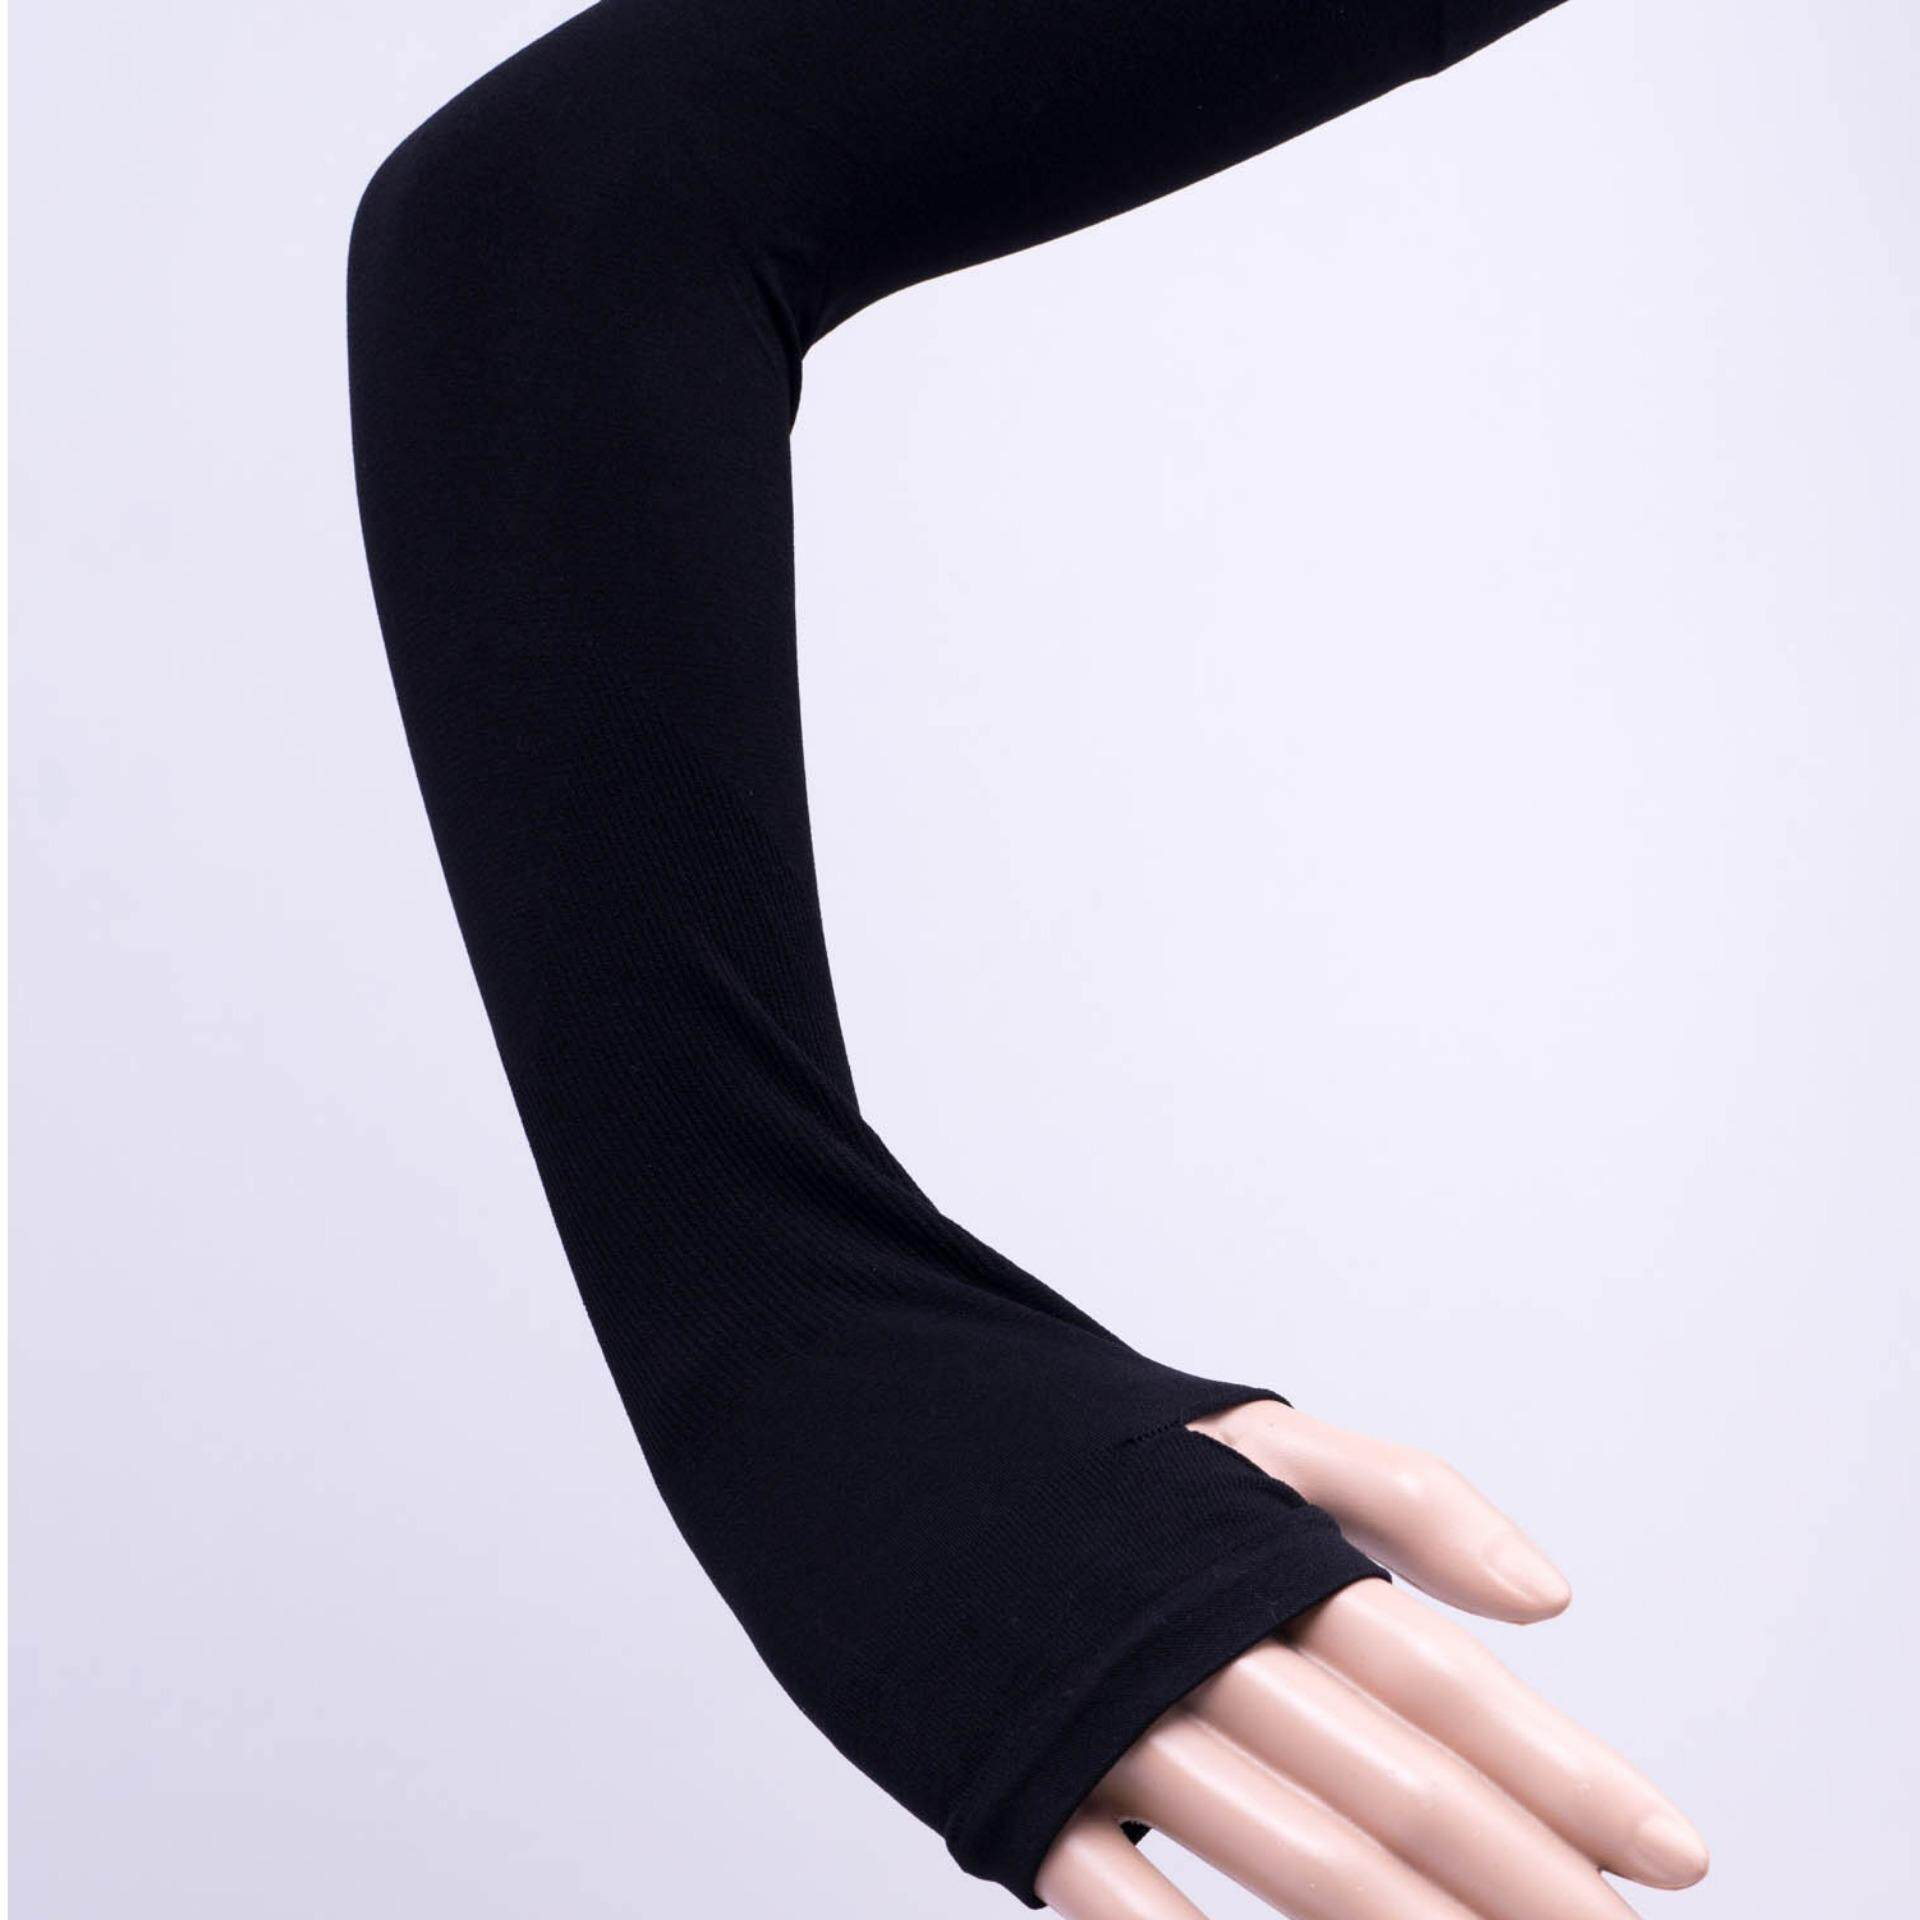 Women`s Handsock With Finger LET`S SLIM - 2 Pairs